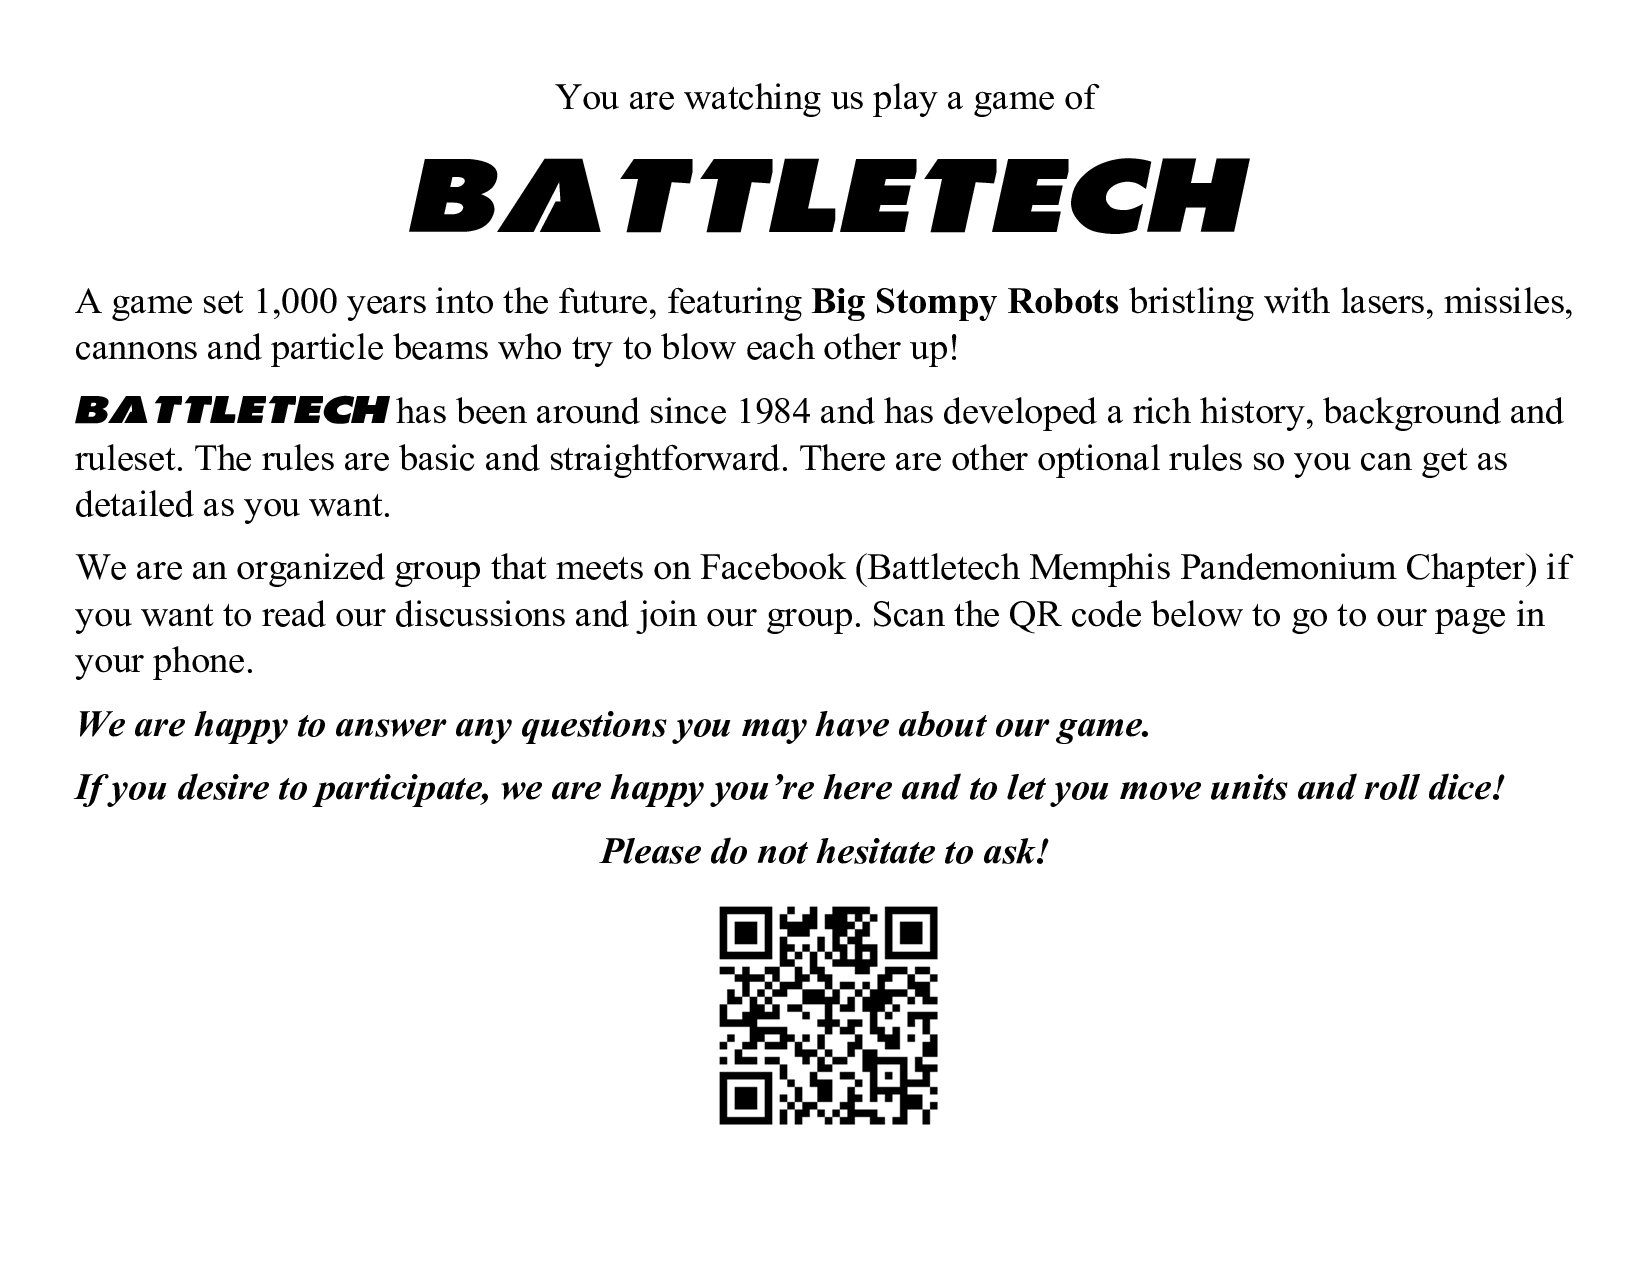 battletech sign